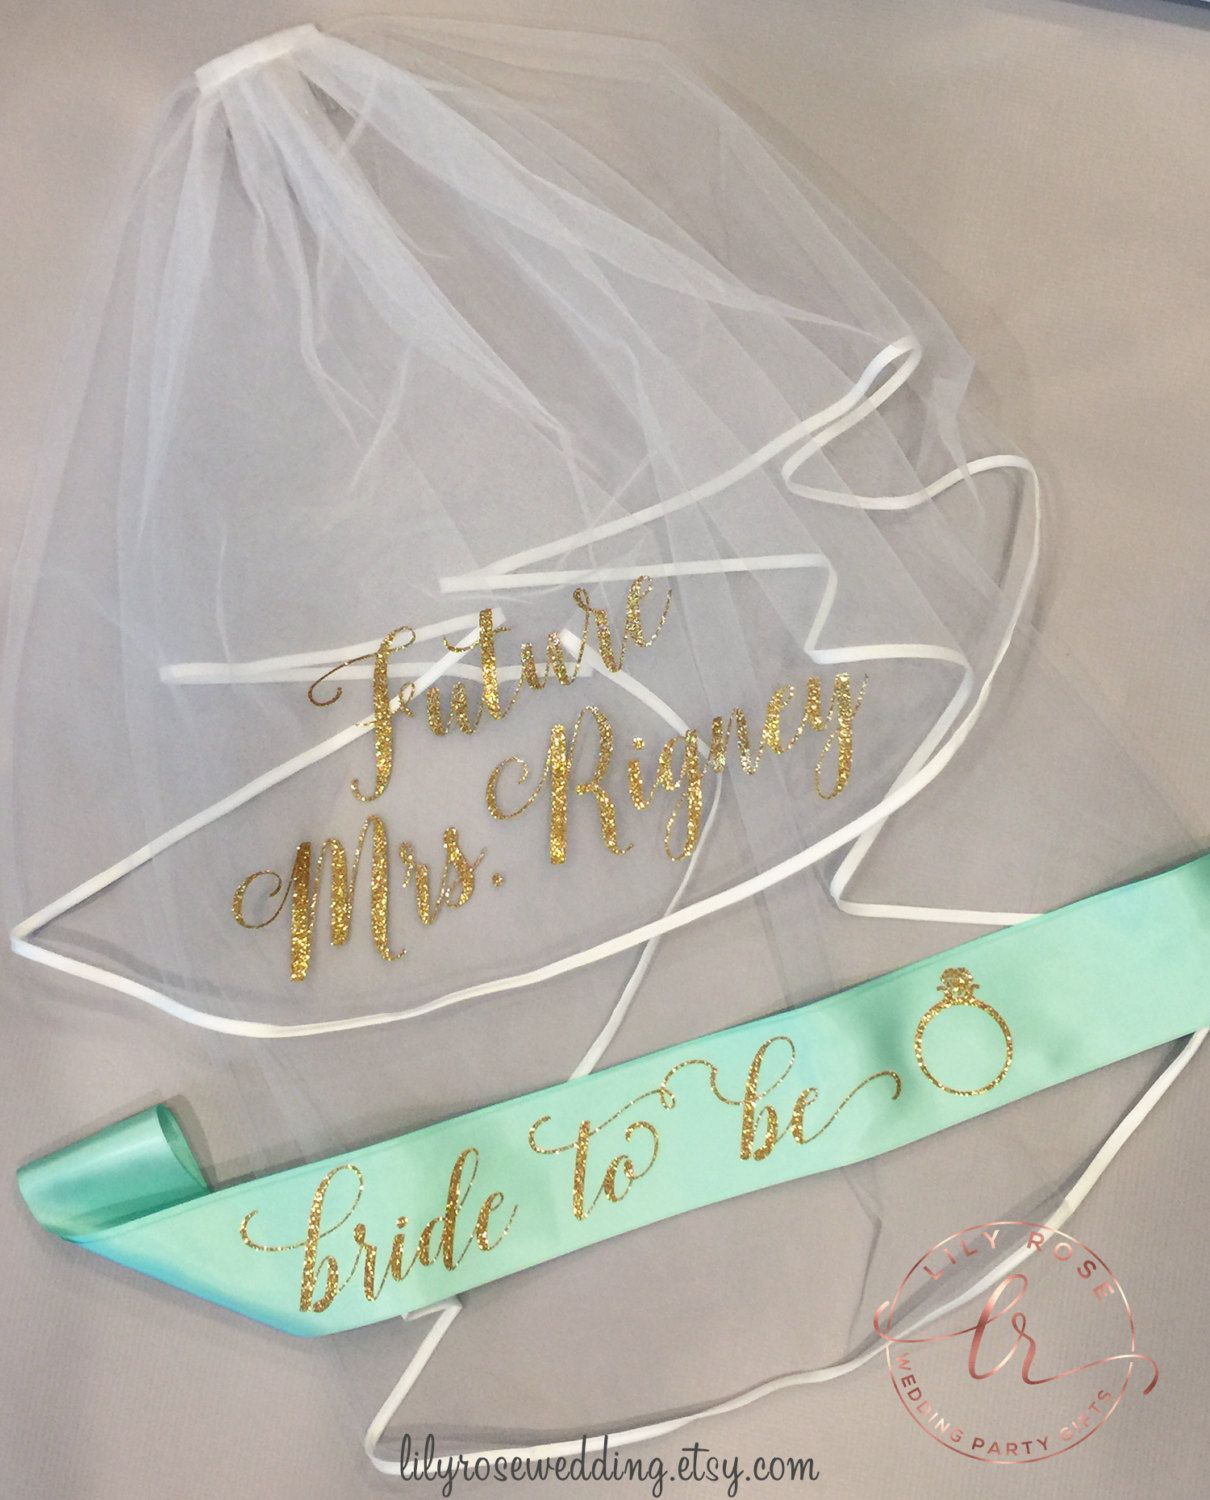 this listing is for our personalized bridal veil and sash you can personalize them with